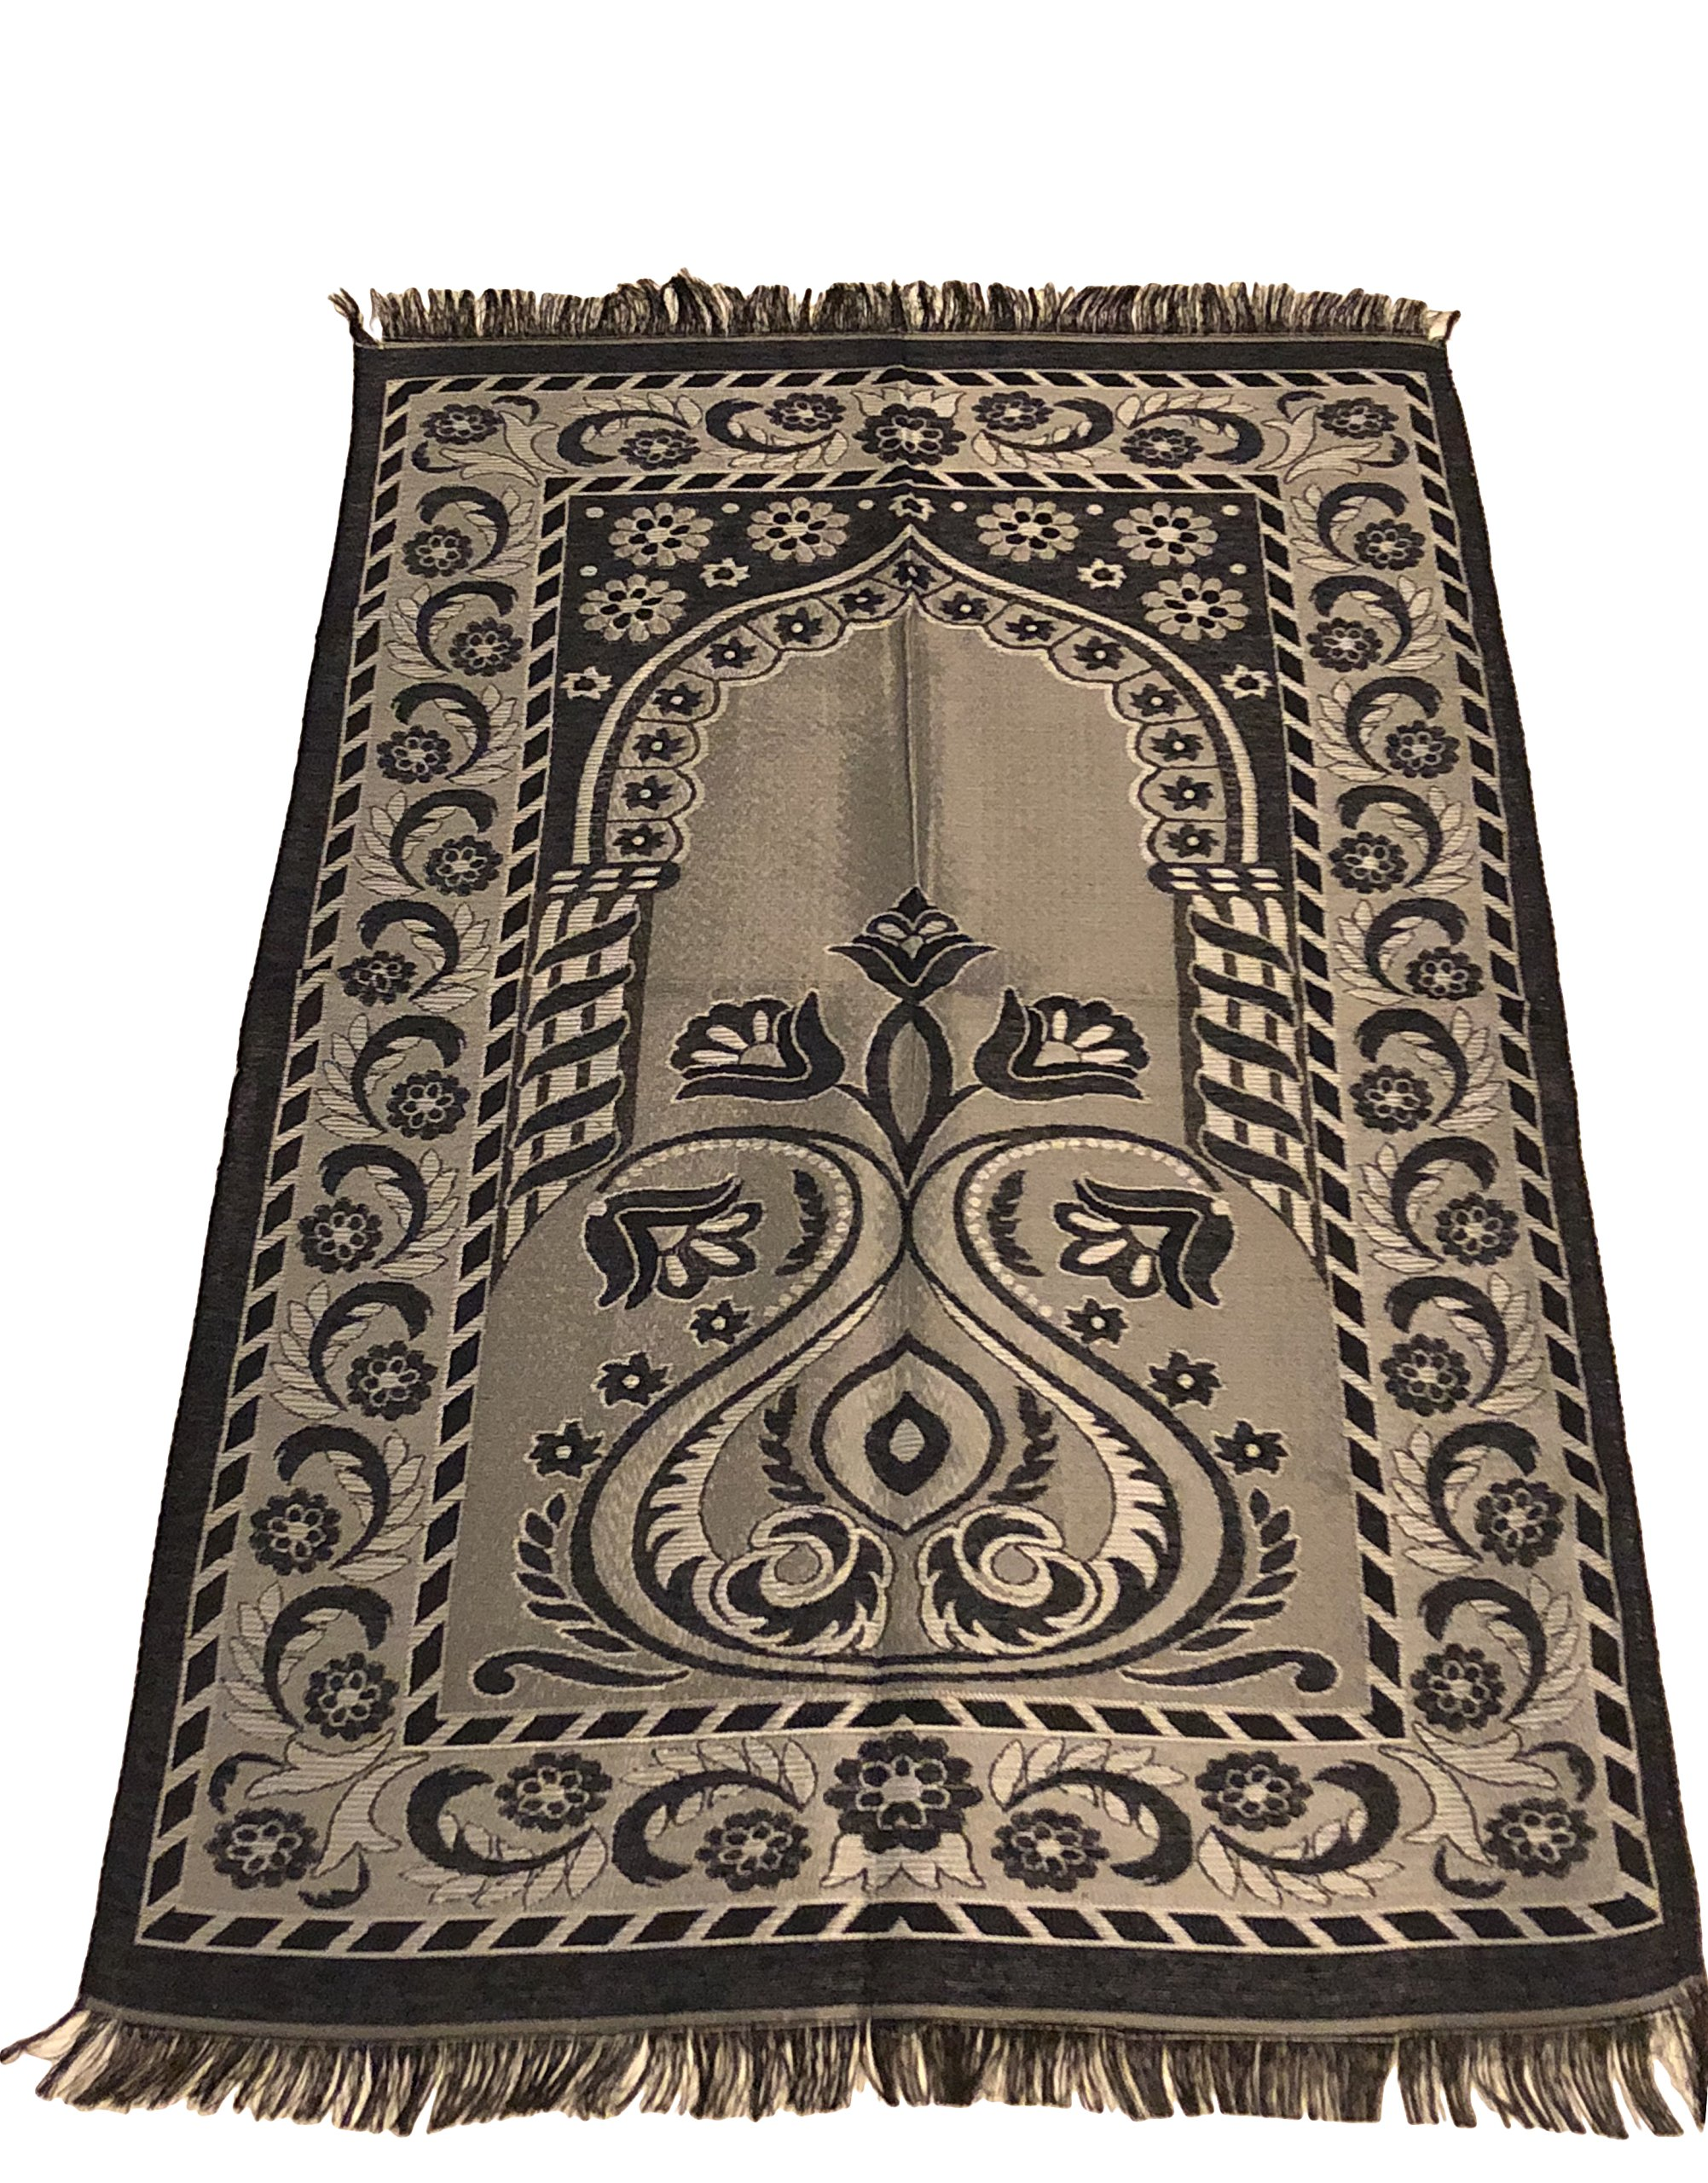 Islamic Prayer Rug Mihrab Tulib Design Excellent Quality Thin Janamaz Sajjadah Muslim Namaz Seccade Turkish Prayer Rug (Dark Blue)